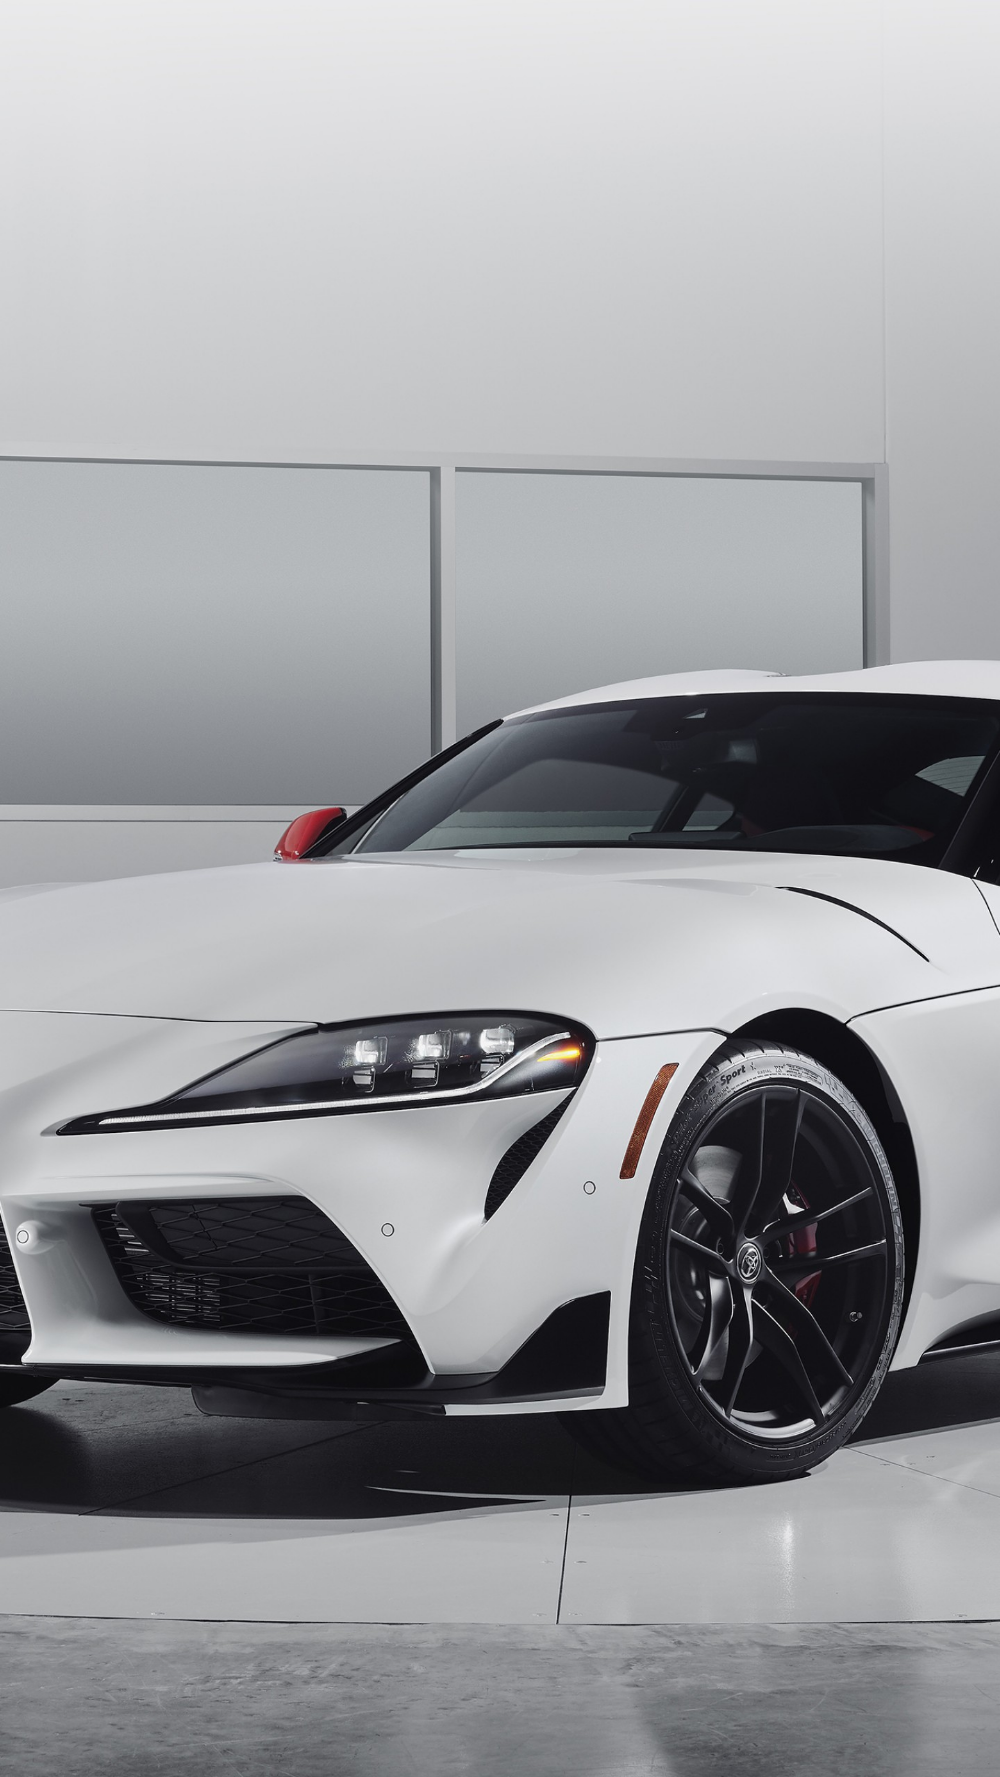 Wallpaper Toyota Gr Supra Launch Edition 2020 4k Automotive Toyota Supra New Toyota Supra Toyota